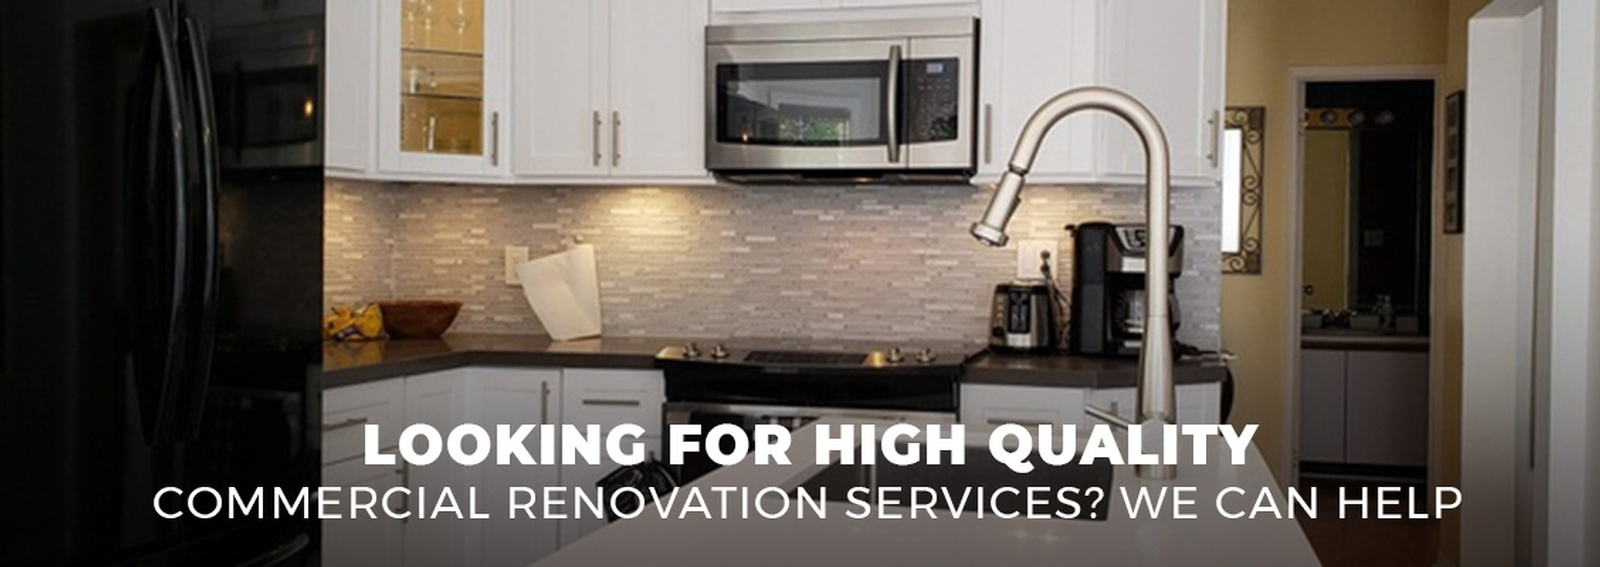 Looking For High Quality Commercial Renovation Services We Can Help